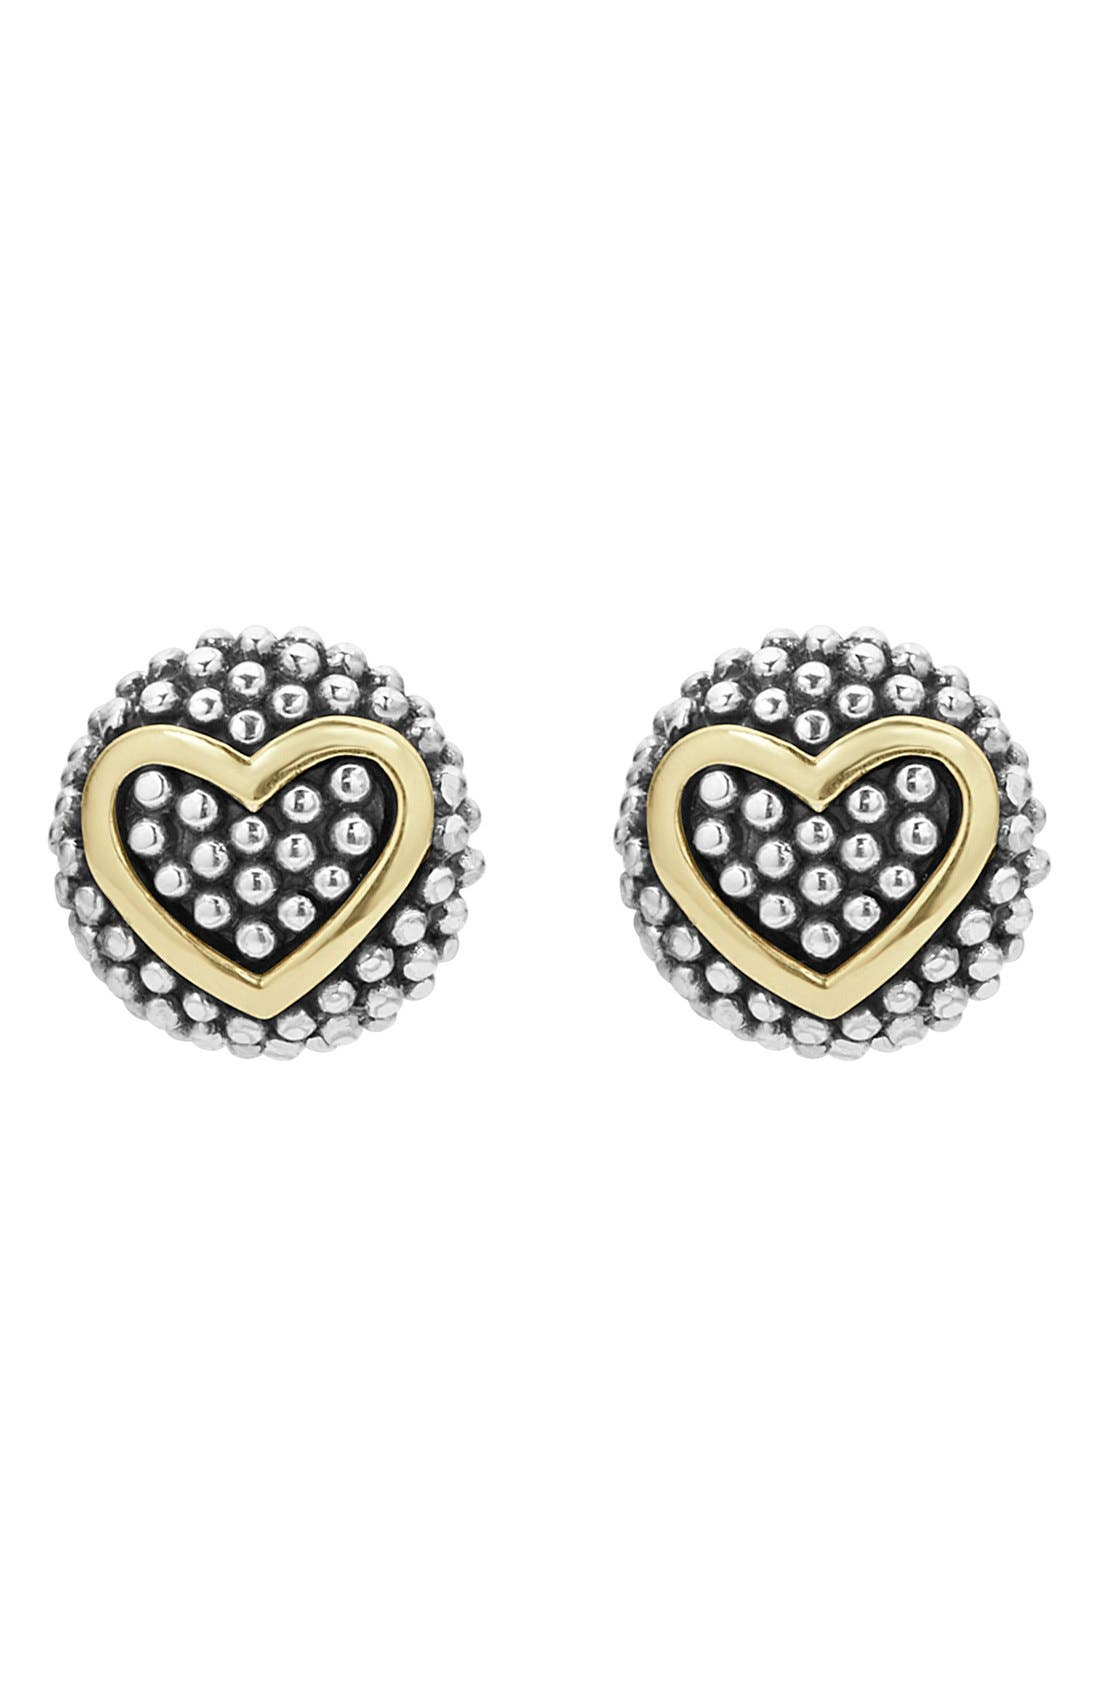 Alternate Image 1 Selected - LAGOS 'Caviar' Heart Stud Earrings